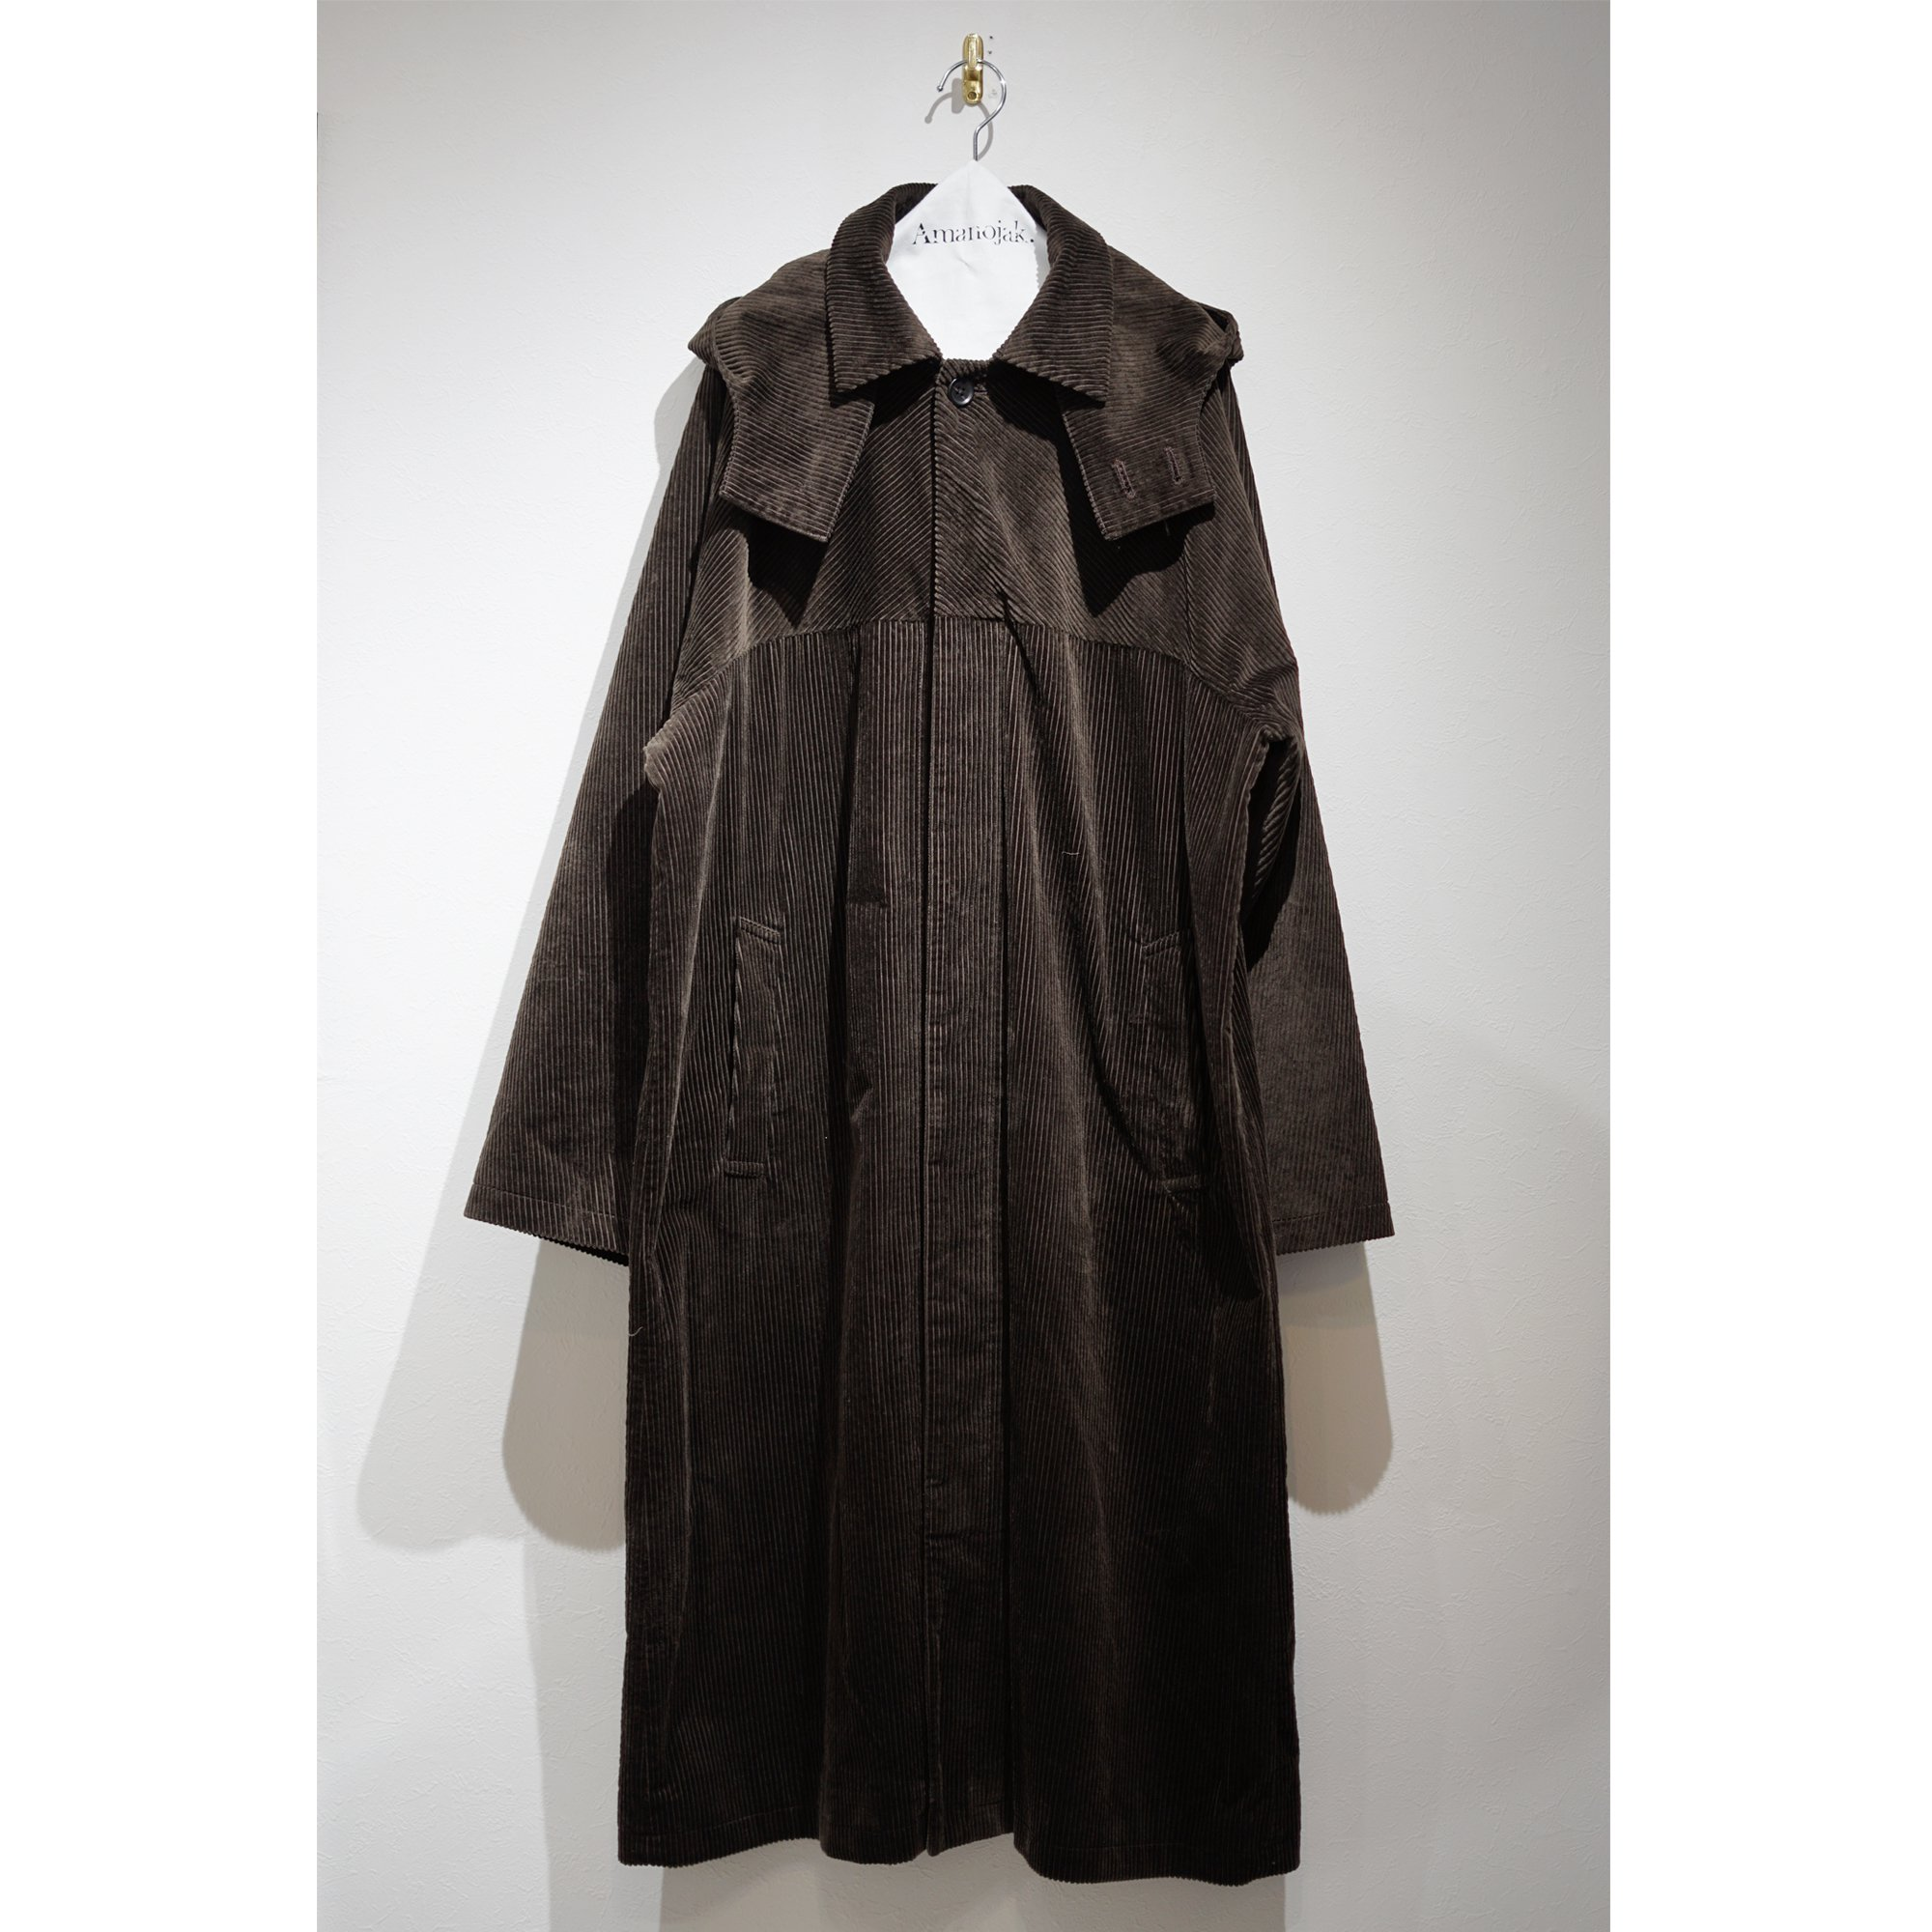 【3/24まで受注受付】ATHA-CORDUROY HOODED BALCOLLAR COAT BROWN